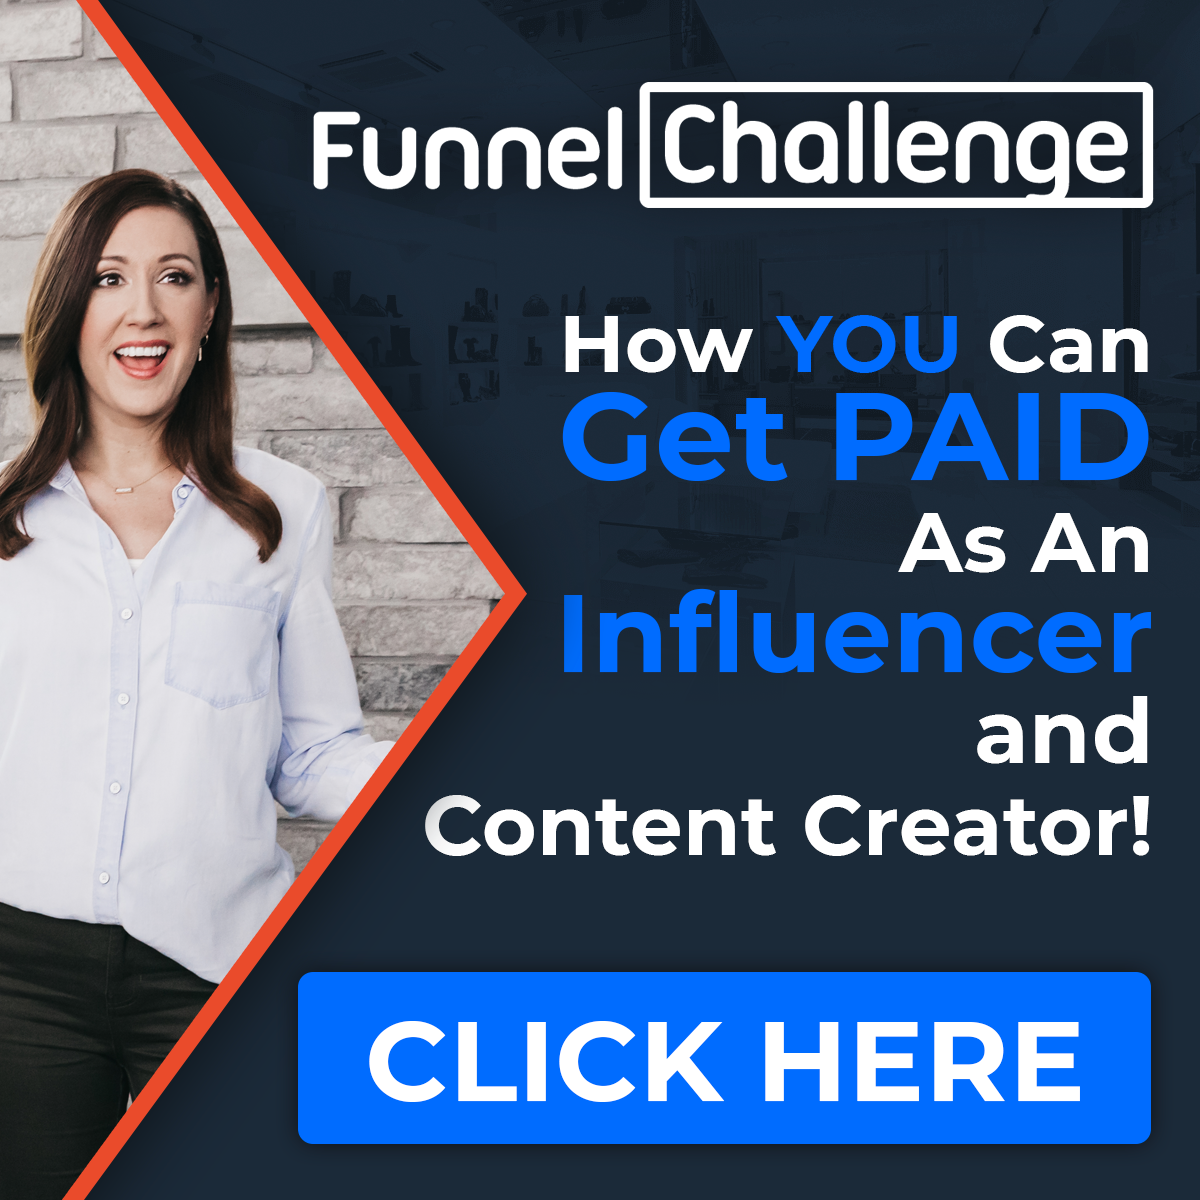 Want to get PAID as an Influencer?